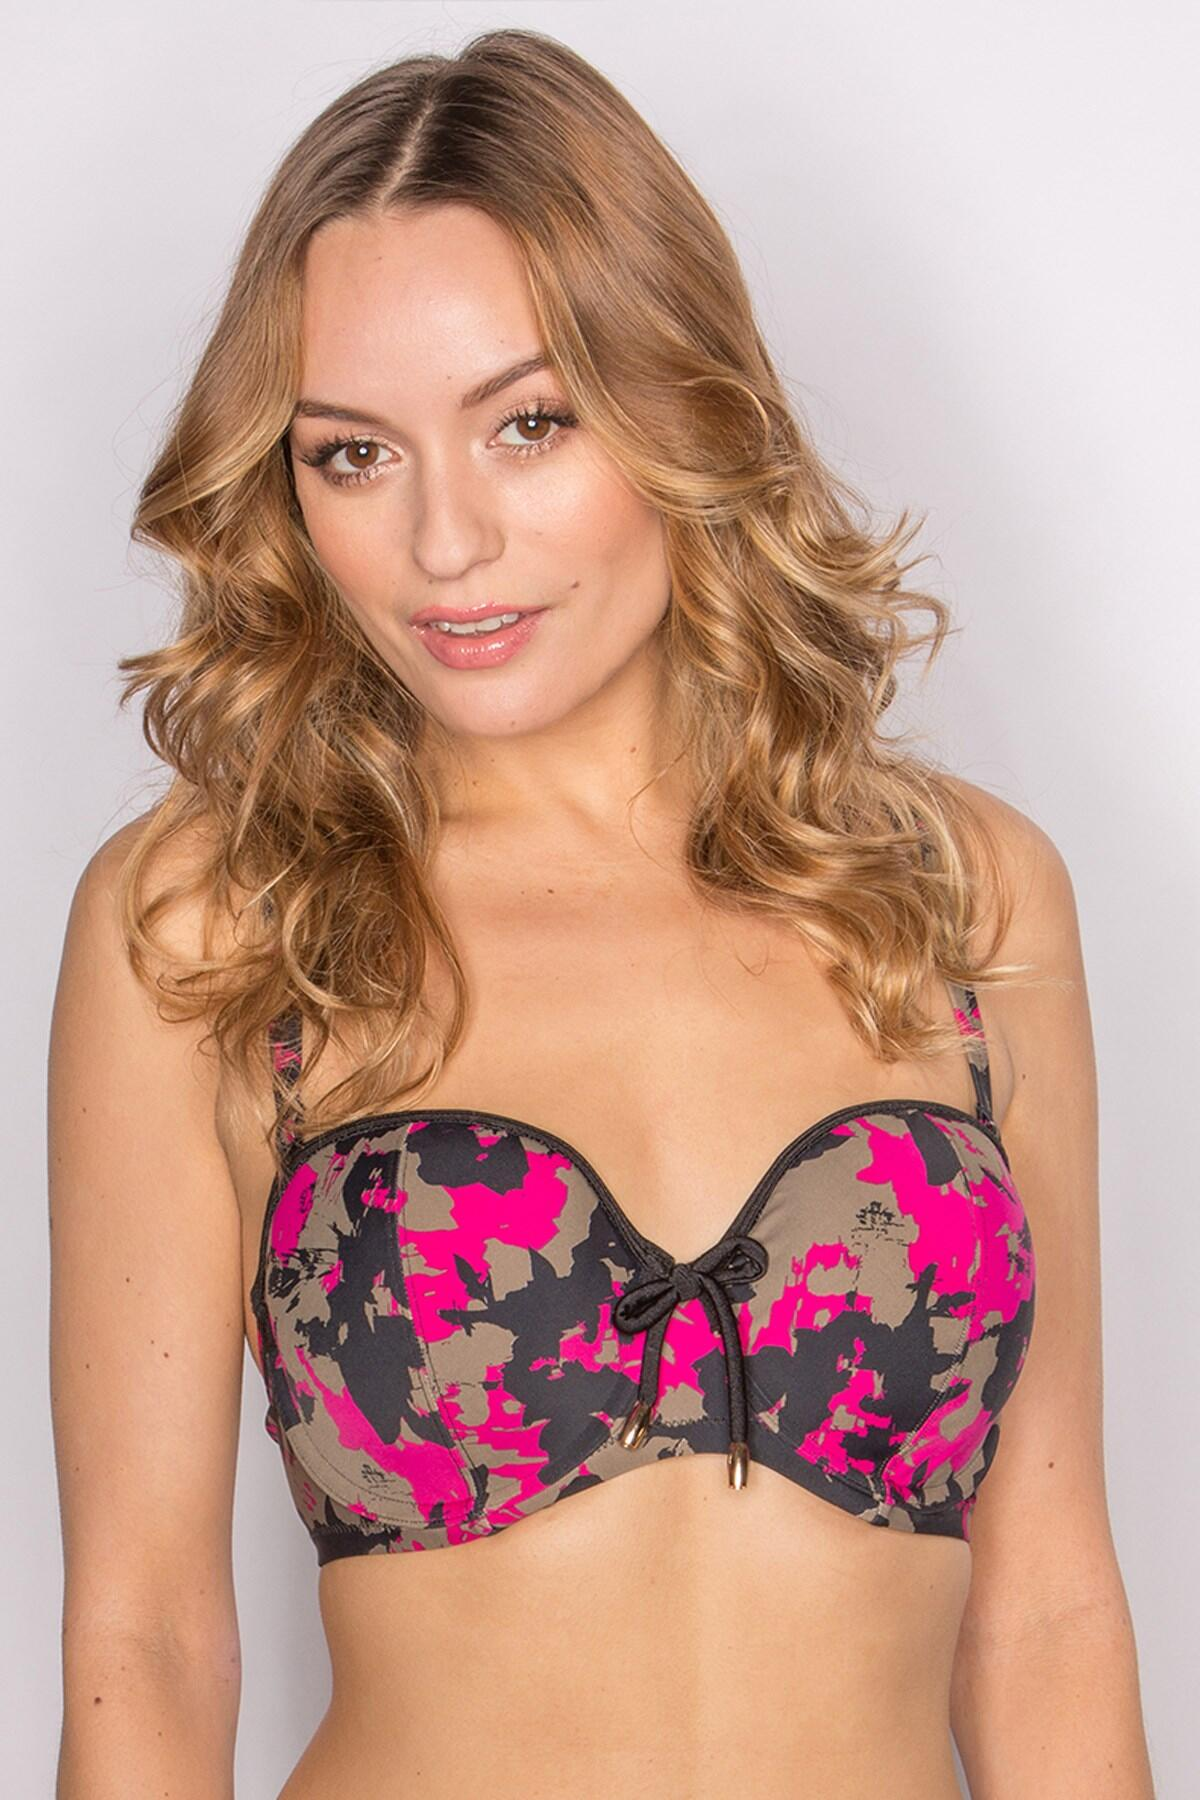 Glamo Camo Strapless Padded Underwired Top - Black/Pink